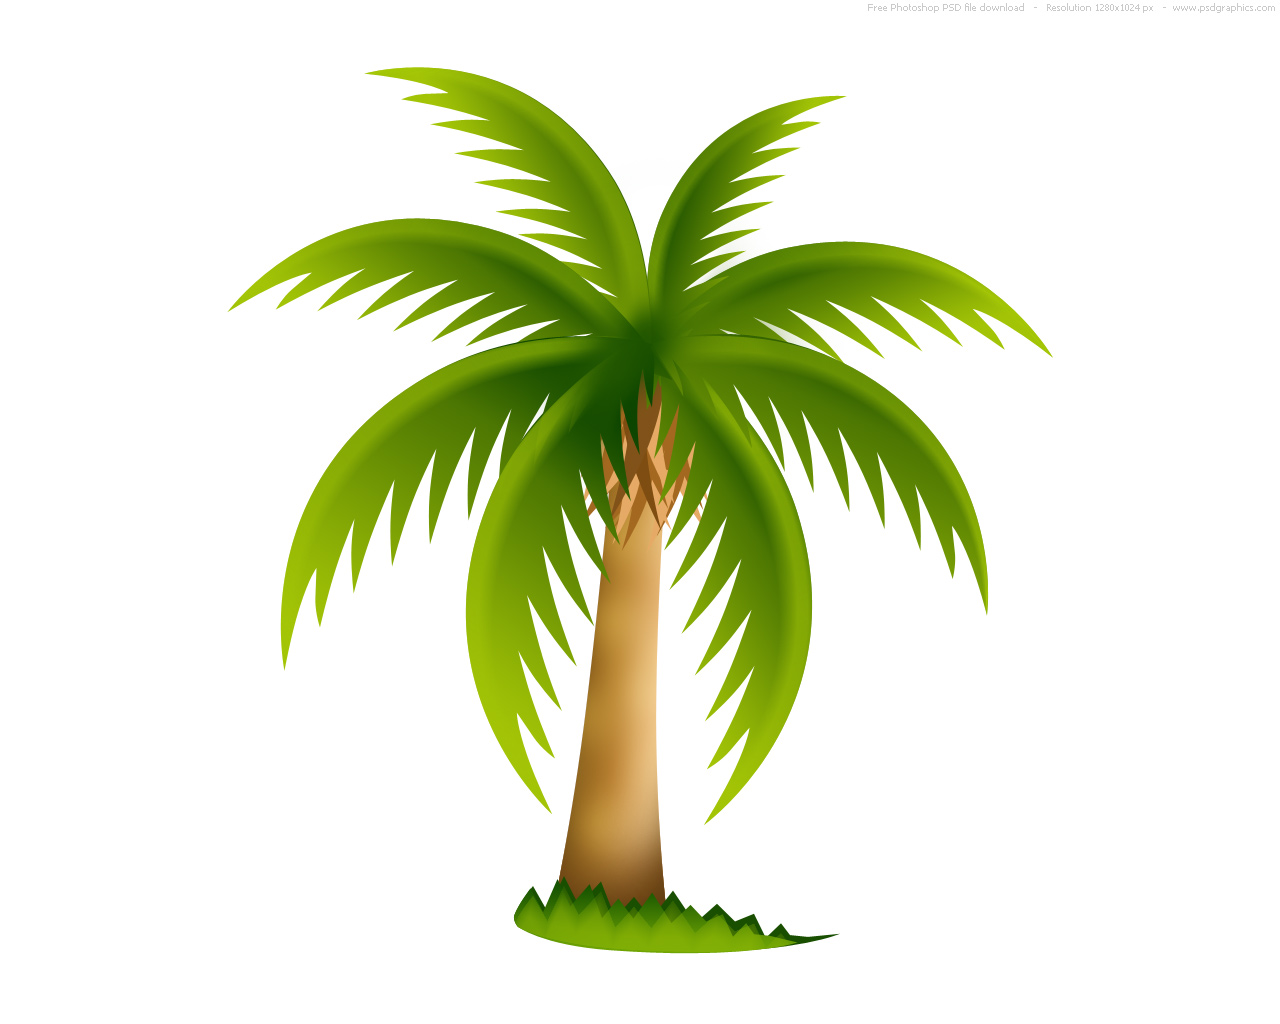 Full size – JPG preview: Palm tree